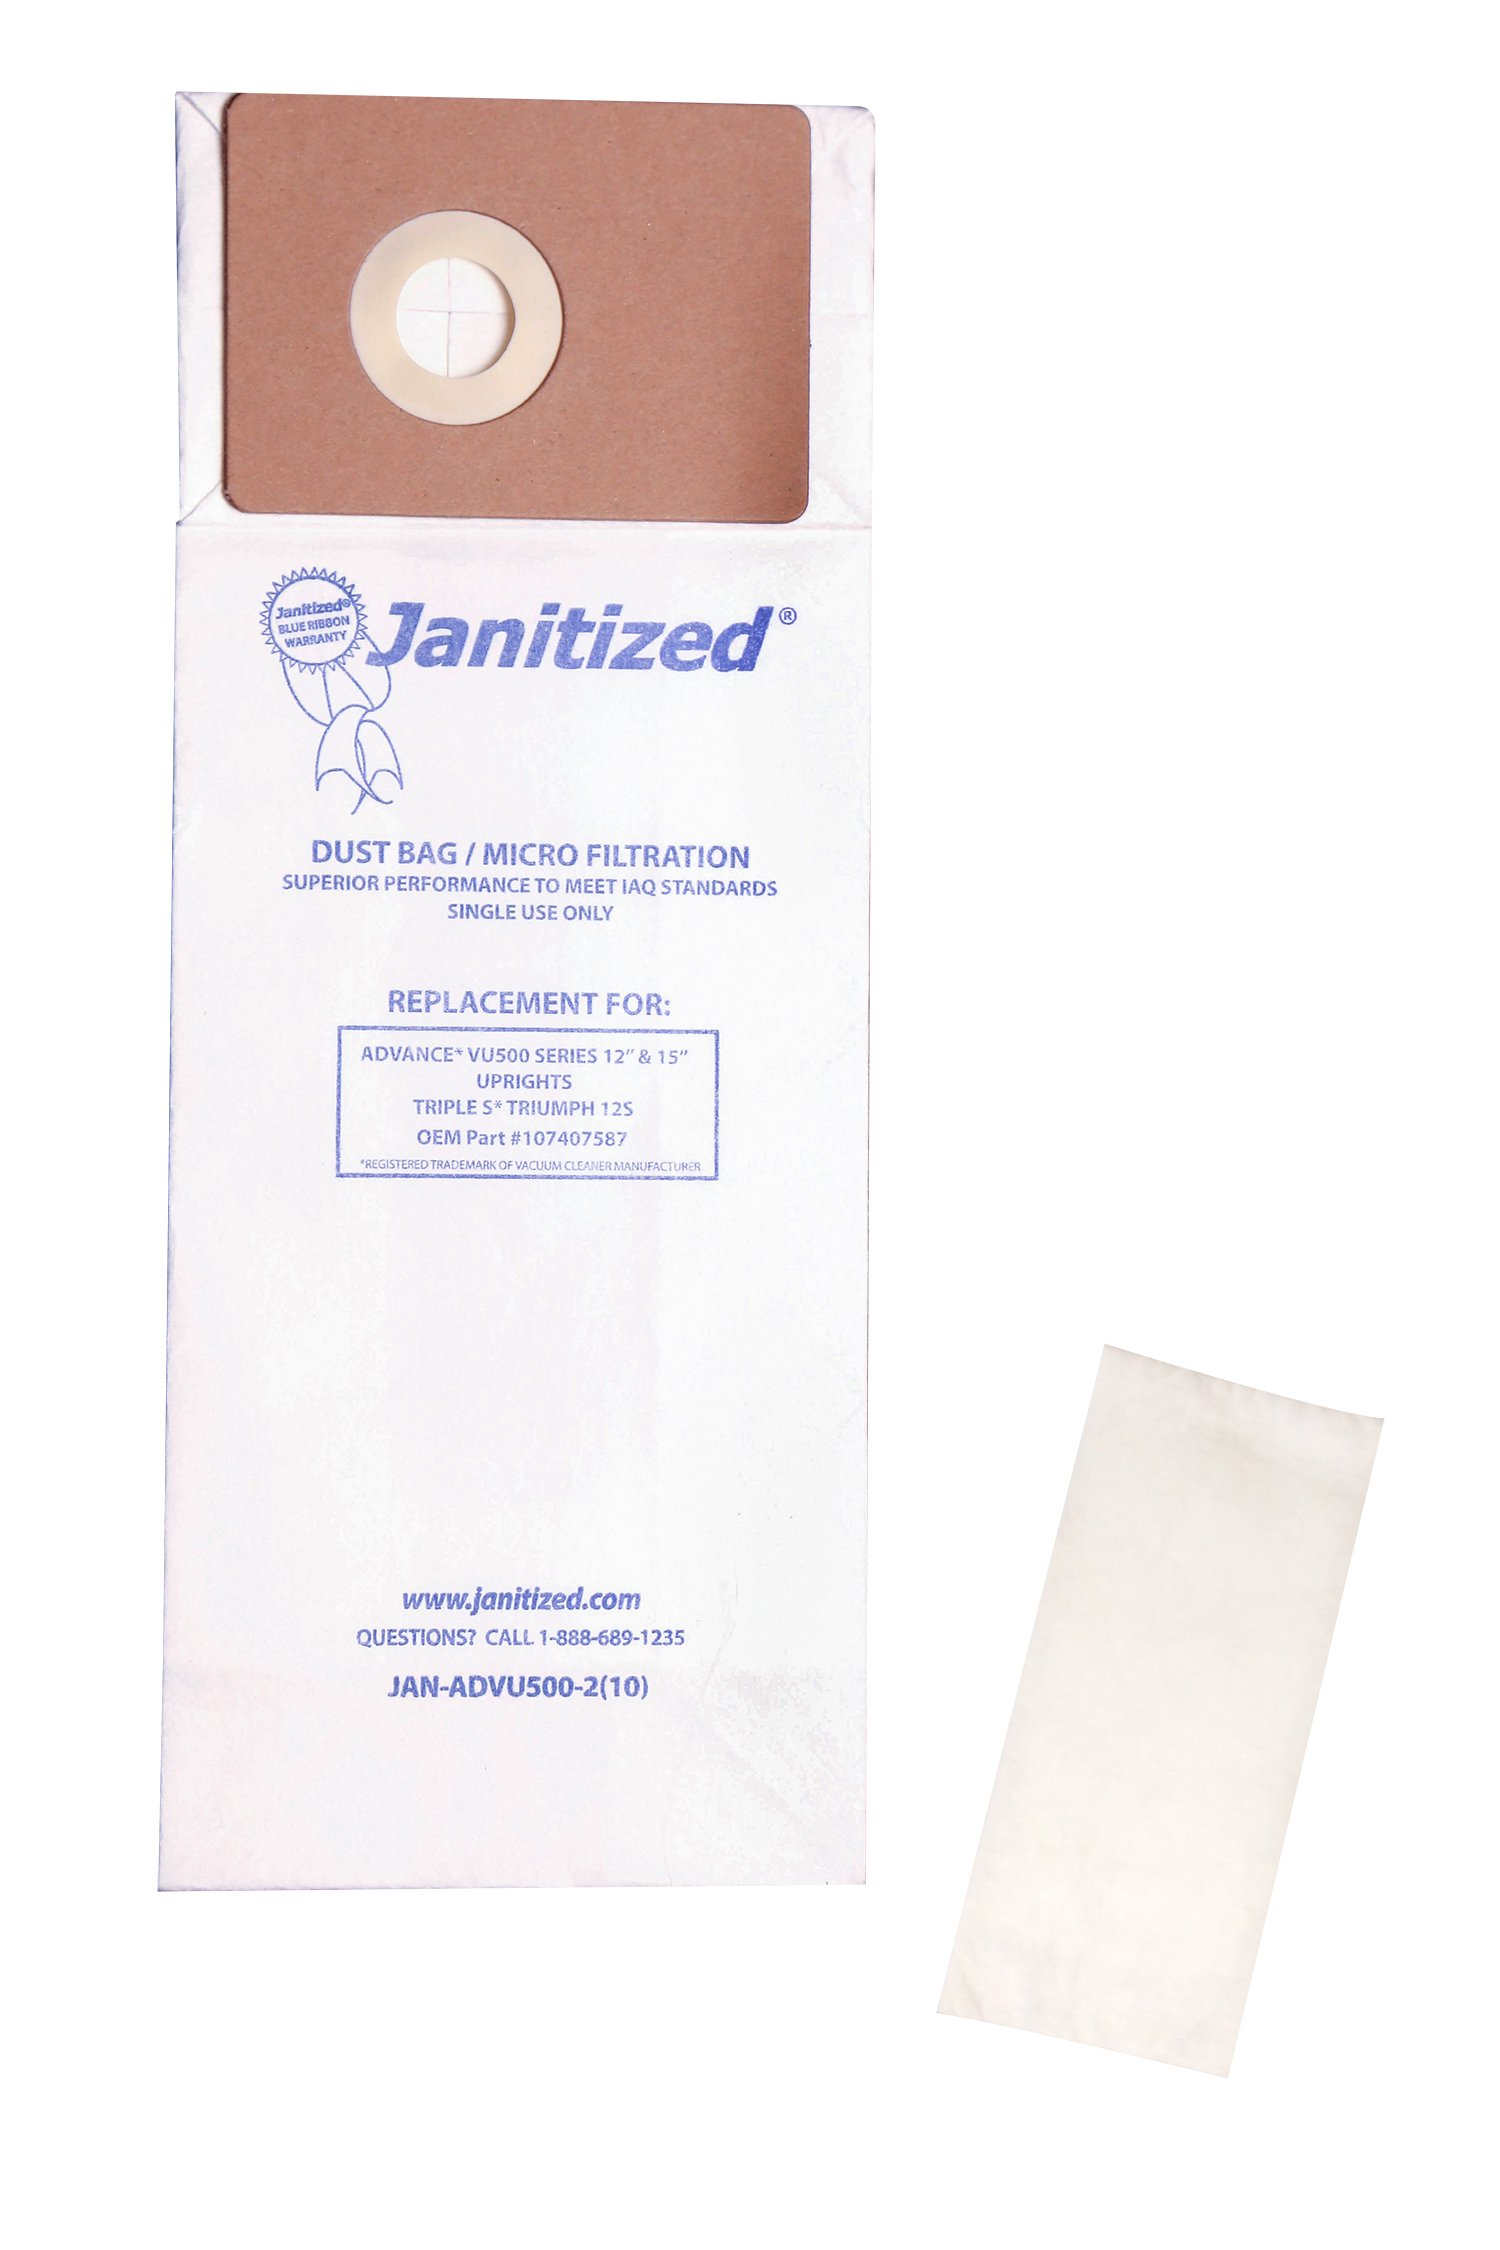 Janitized JAN-ADVU500-2(10) Premium Replacement Commercial Vacuum Paper Bag for Advance VU500 Vacuum Cleaners, OEM#107407587, 107404820 (Pack of 100)